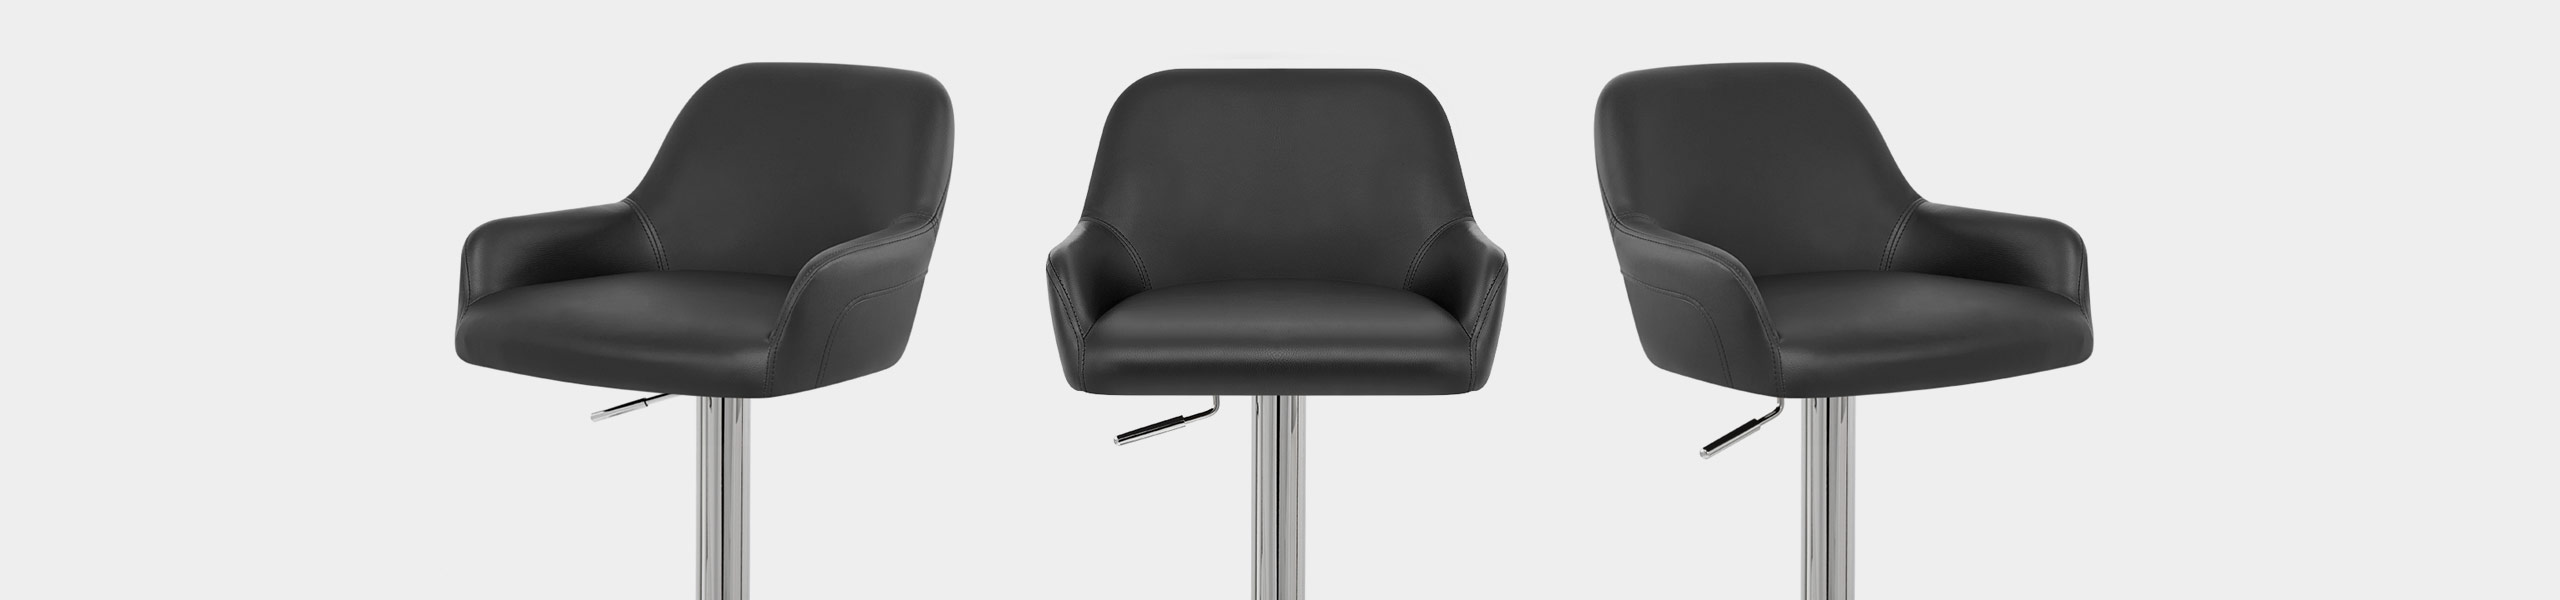 Sassi Bar Stool Black Video Banner